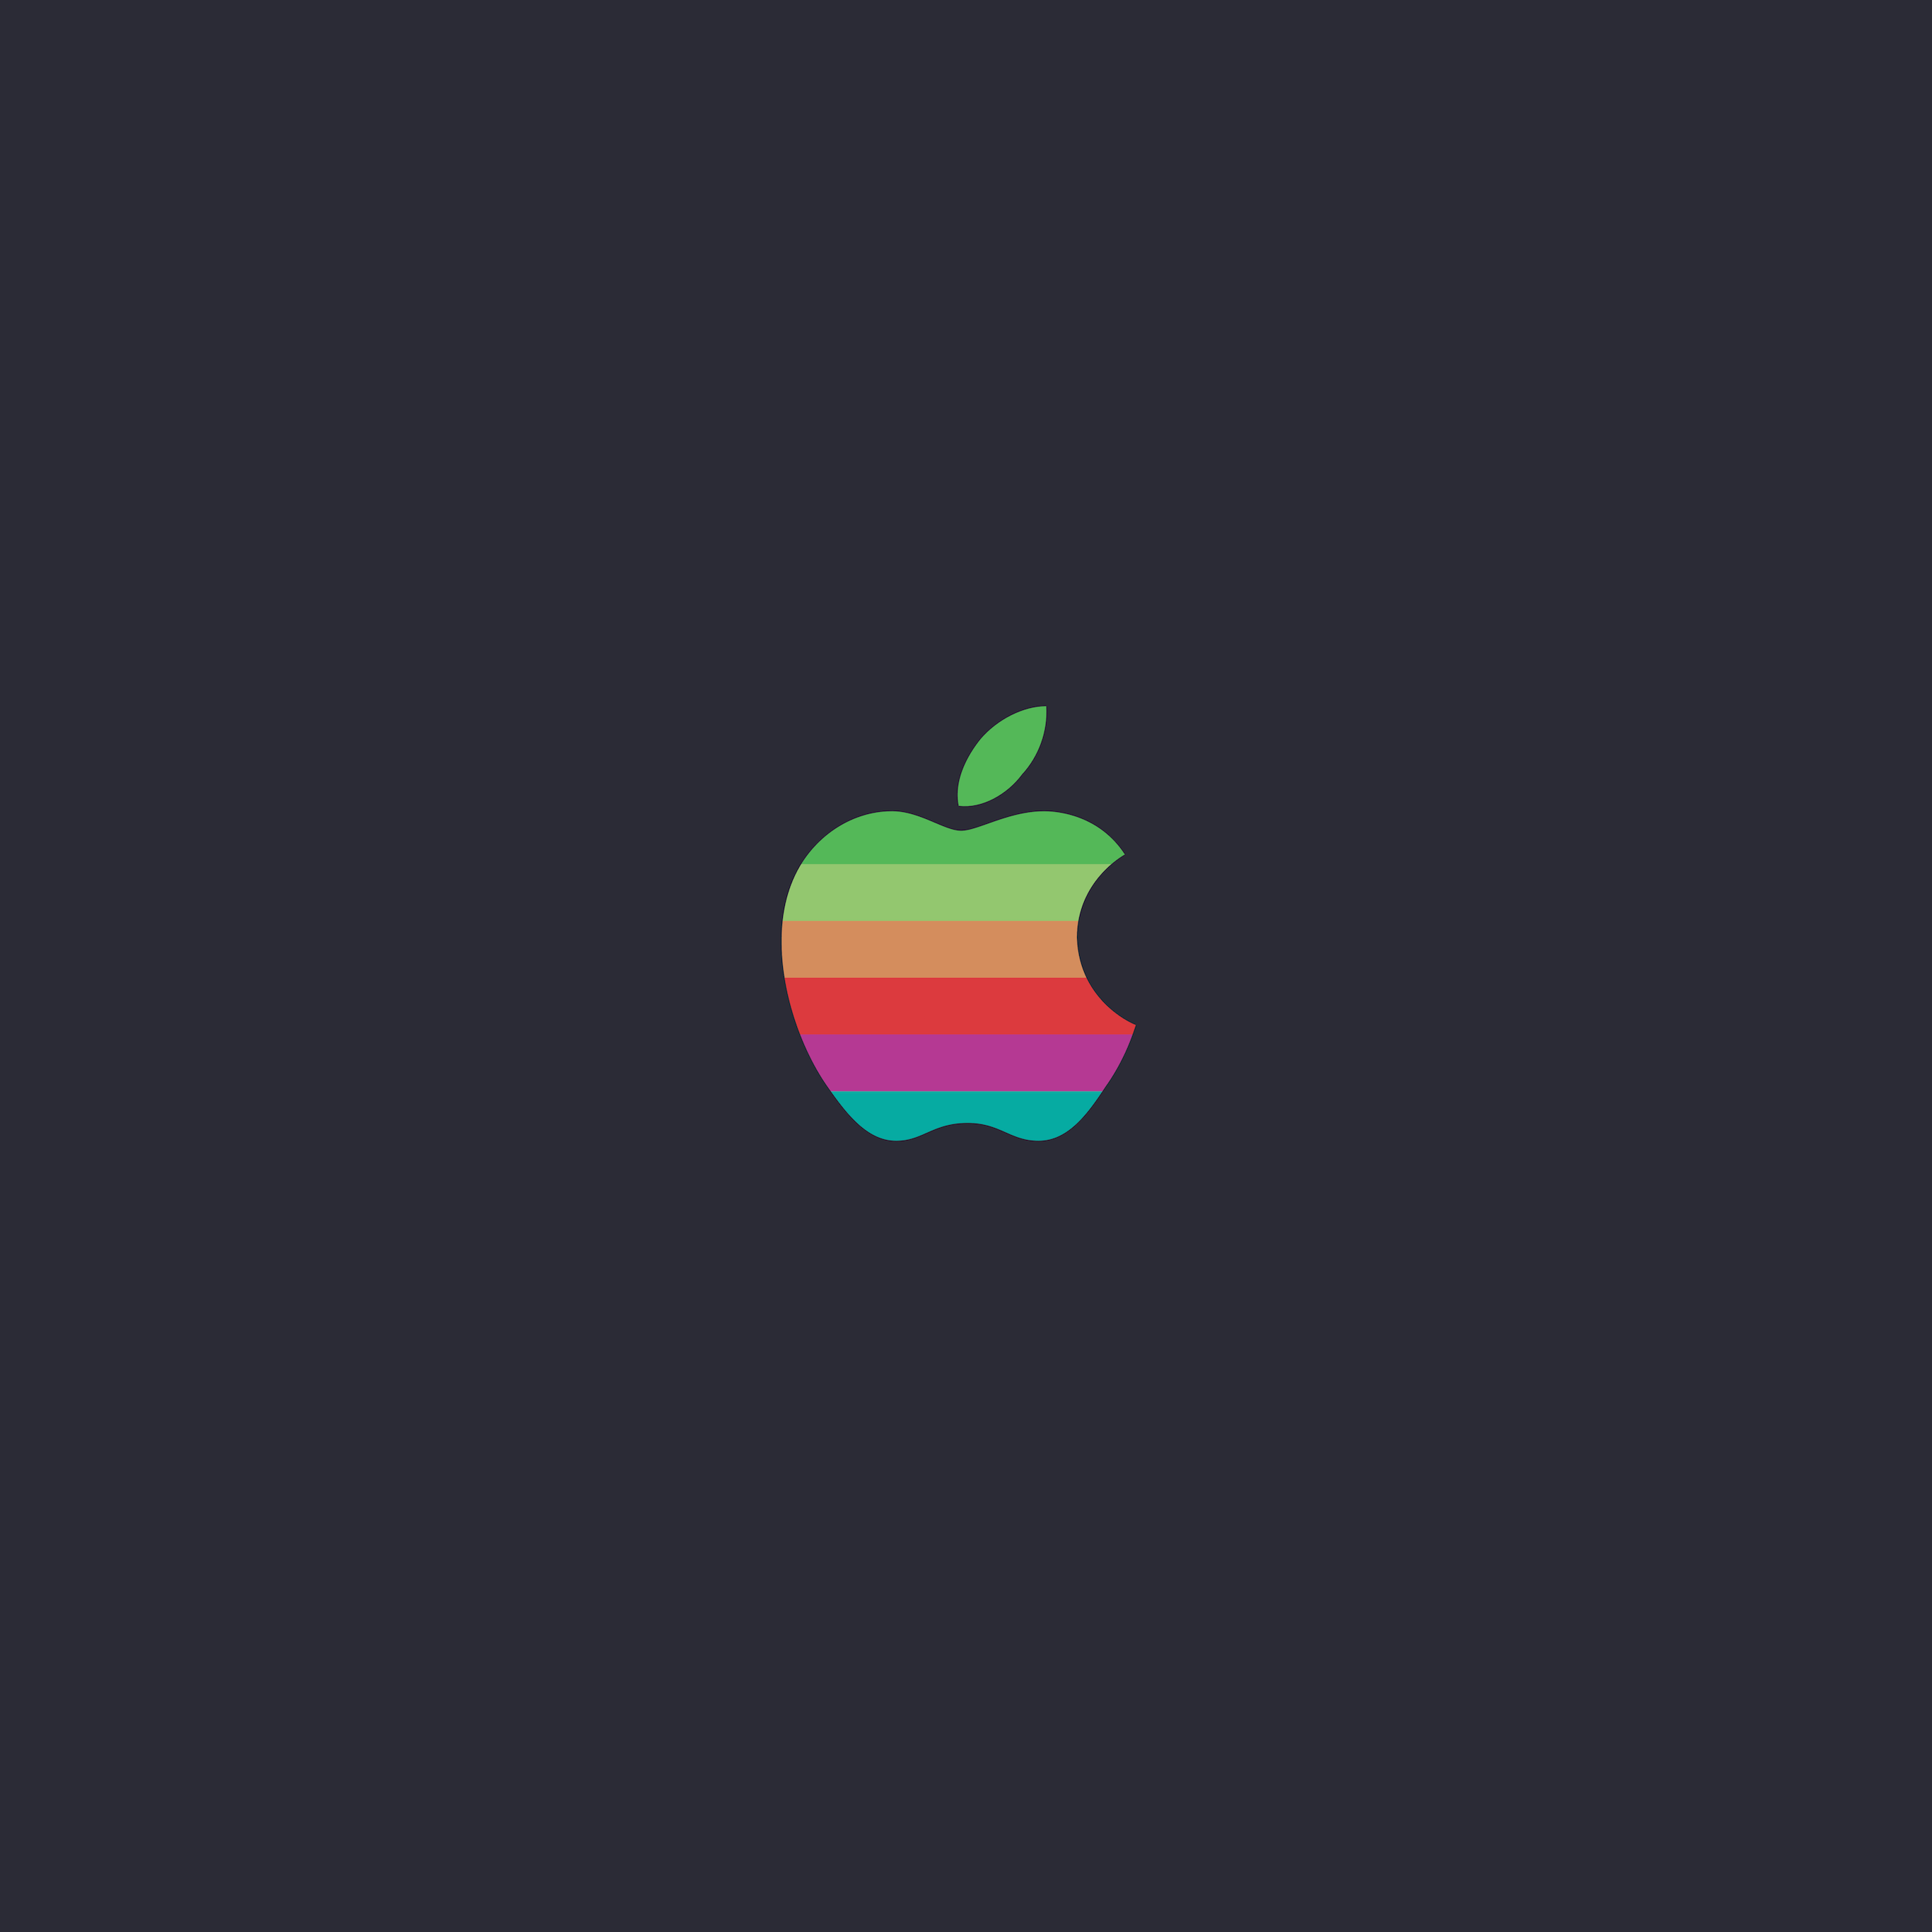 IPhone X Wallpapers Wallpaper Cave